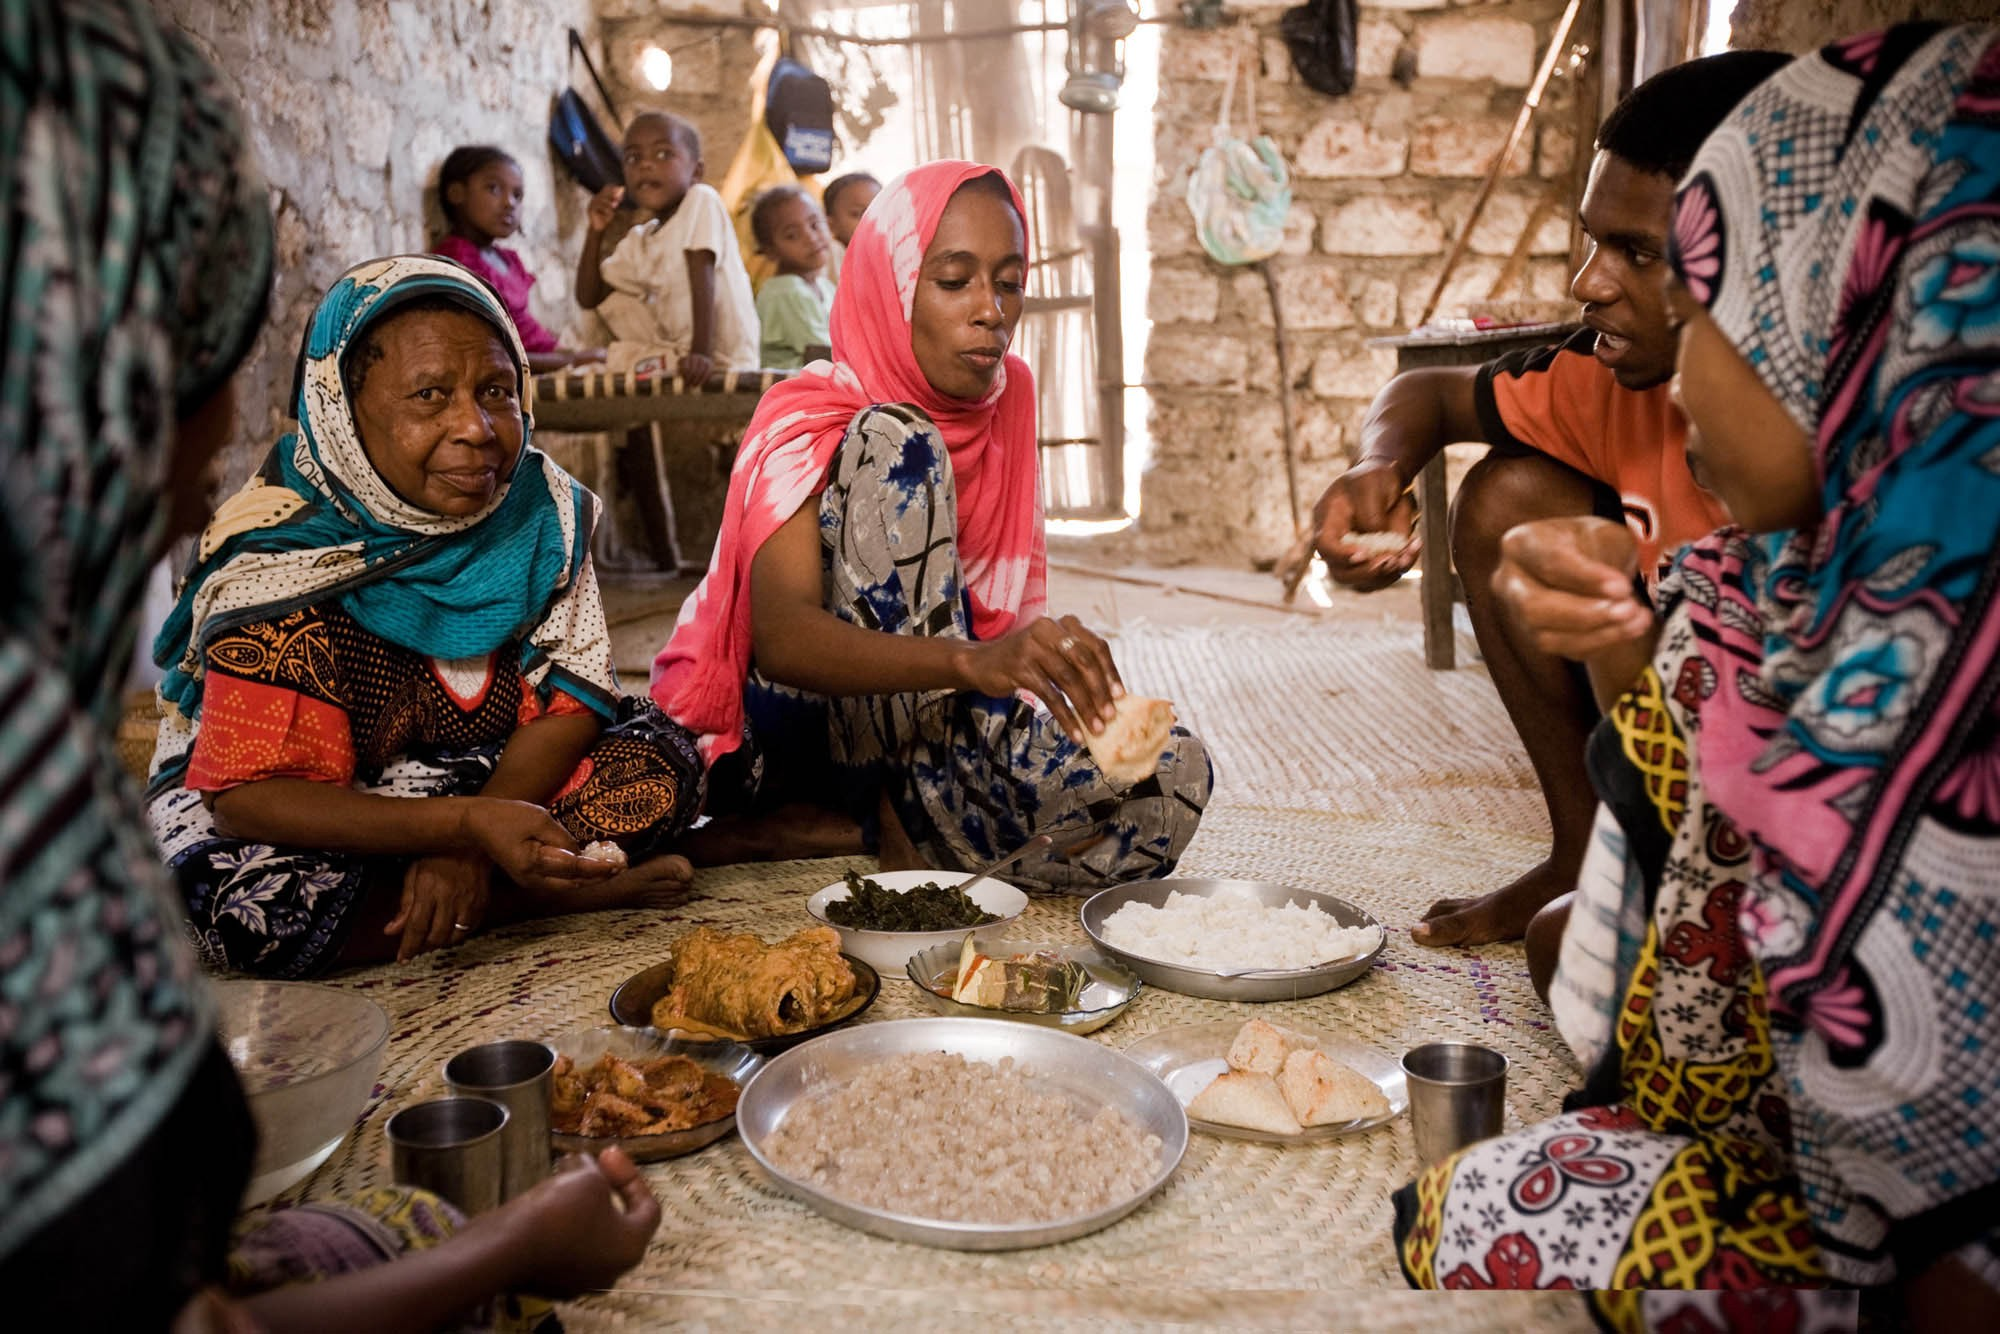 The Mohammed family serves lunch at their coral stone house in the fishing village of Kipangani. | © James Fisher 2017 All Rights Reserved.